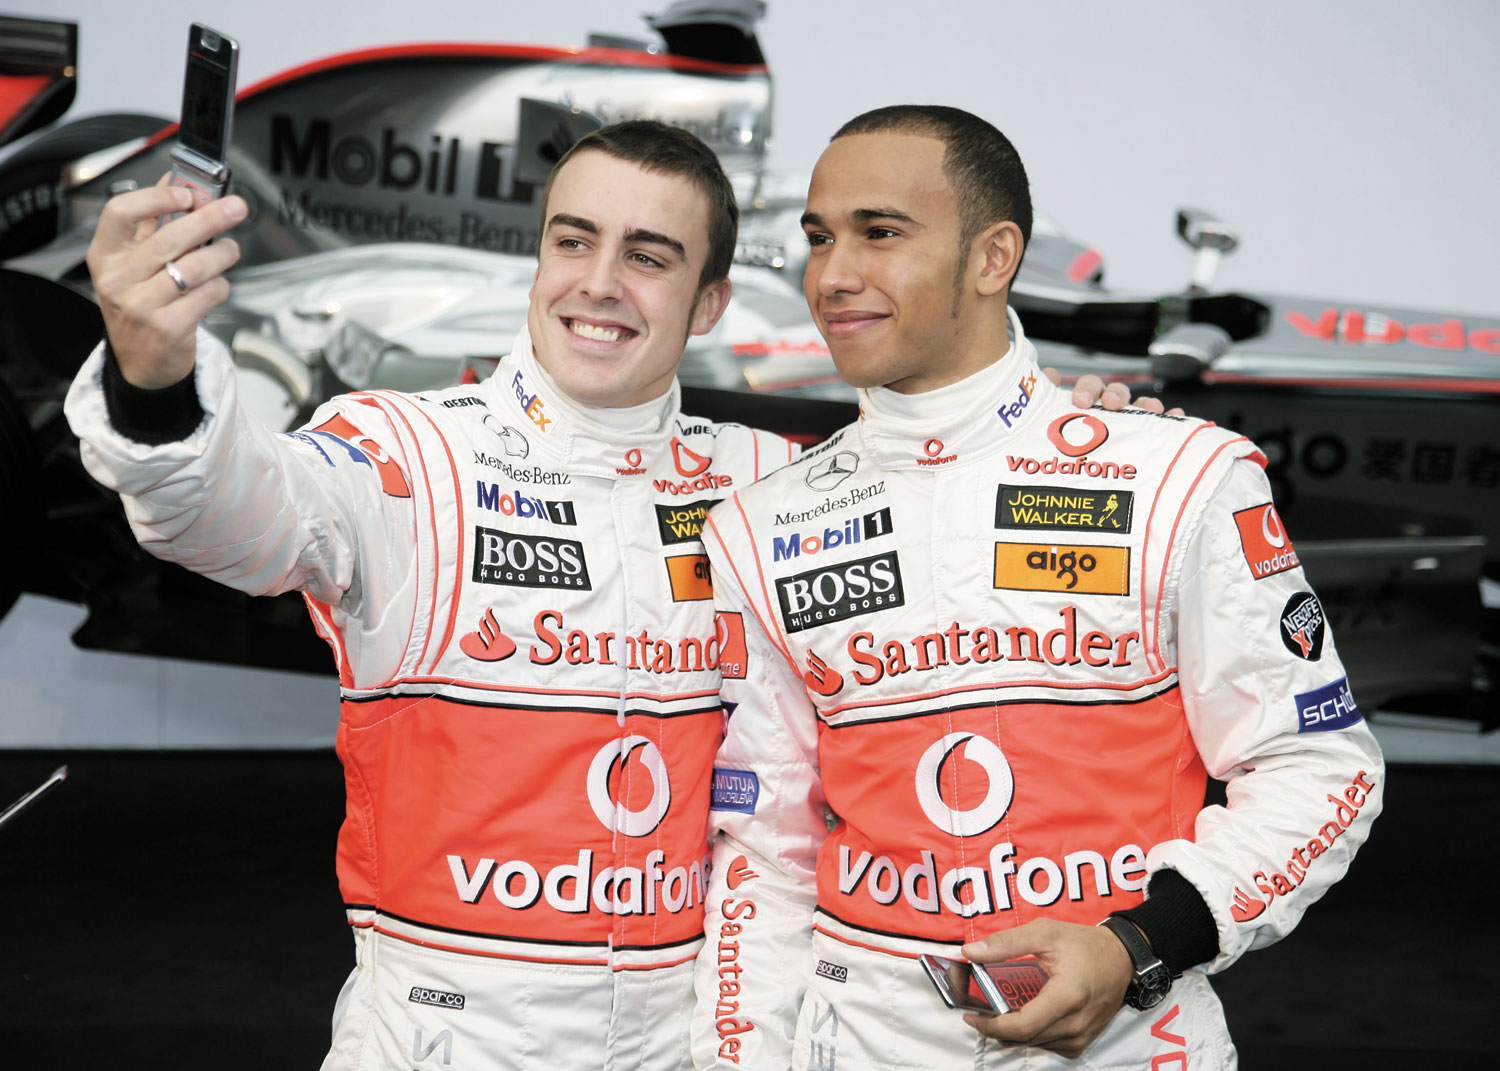 Lewis Hamilton (right) and Fernando Alonso at Vodafone McLaren Mercedes Team Presentation. Photograph courtesy www.mclaren.com